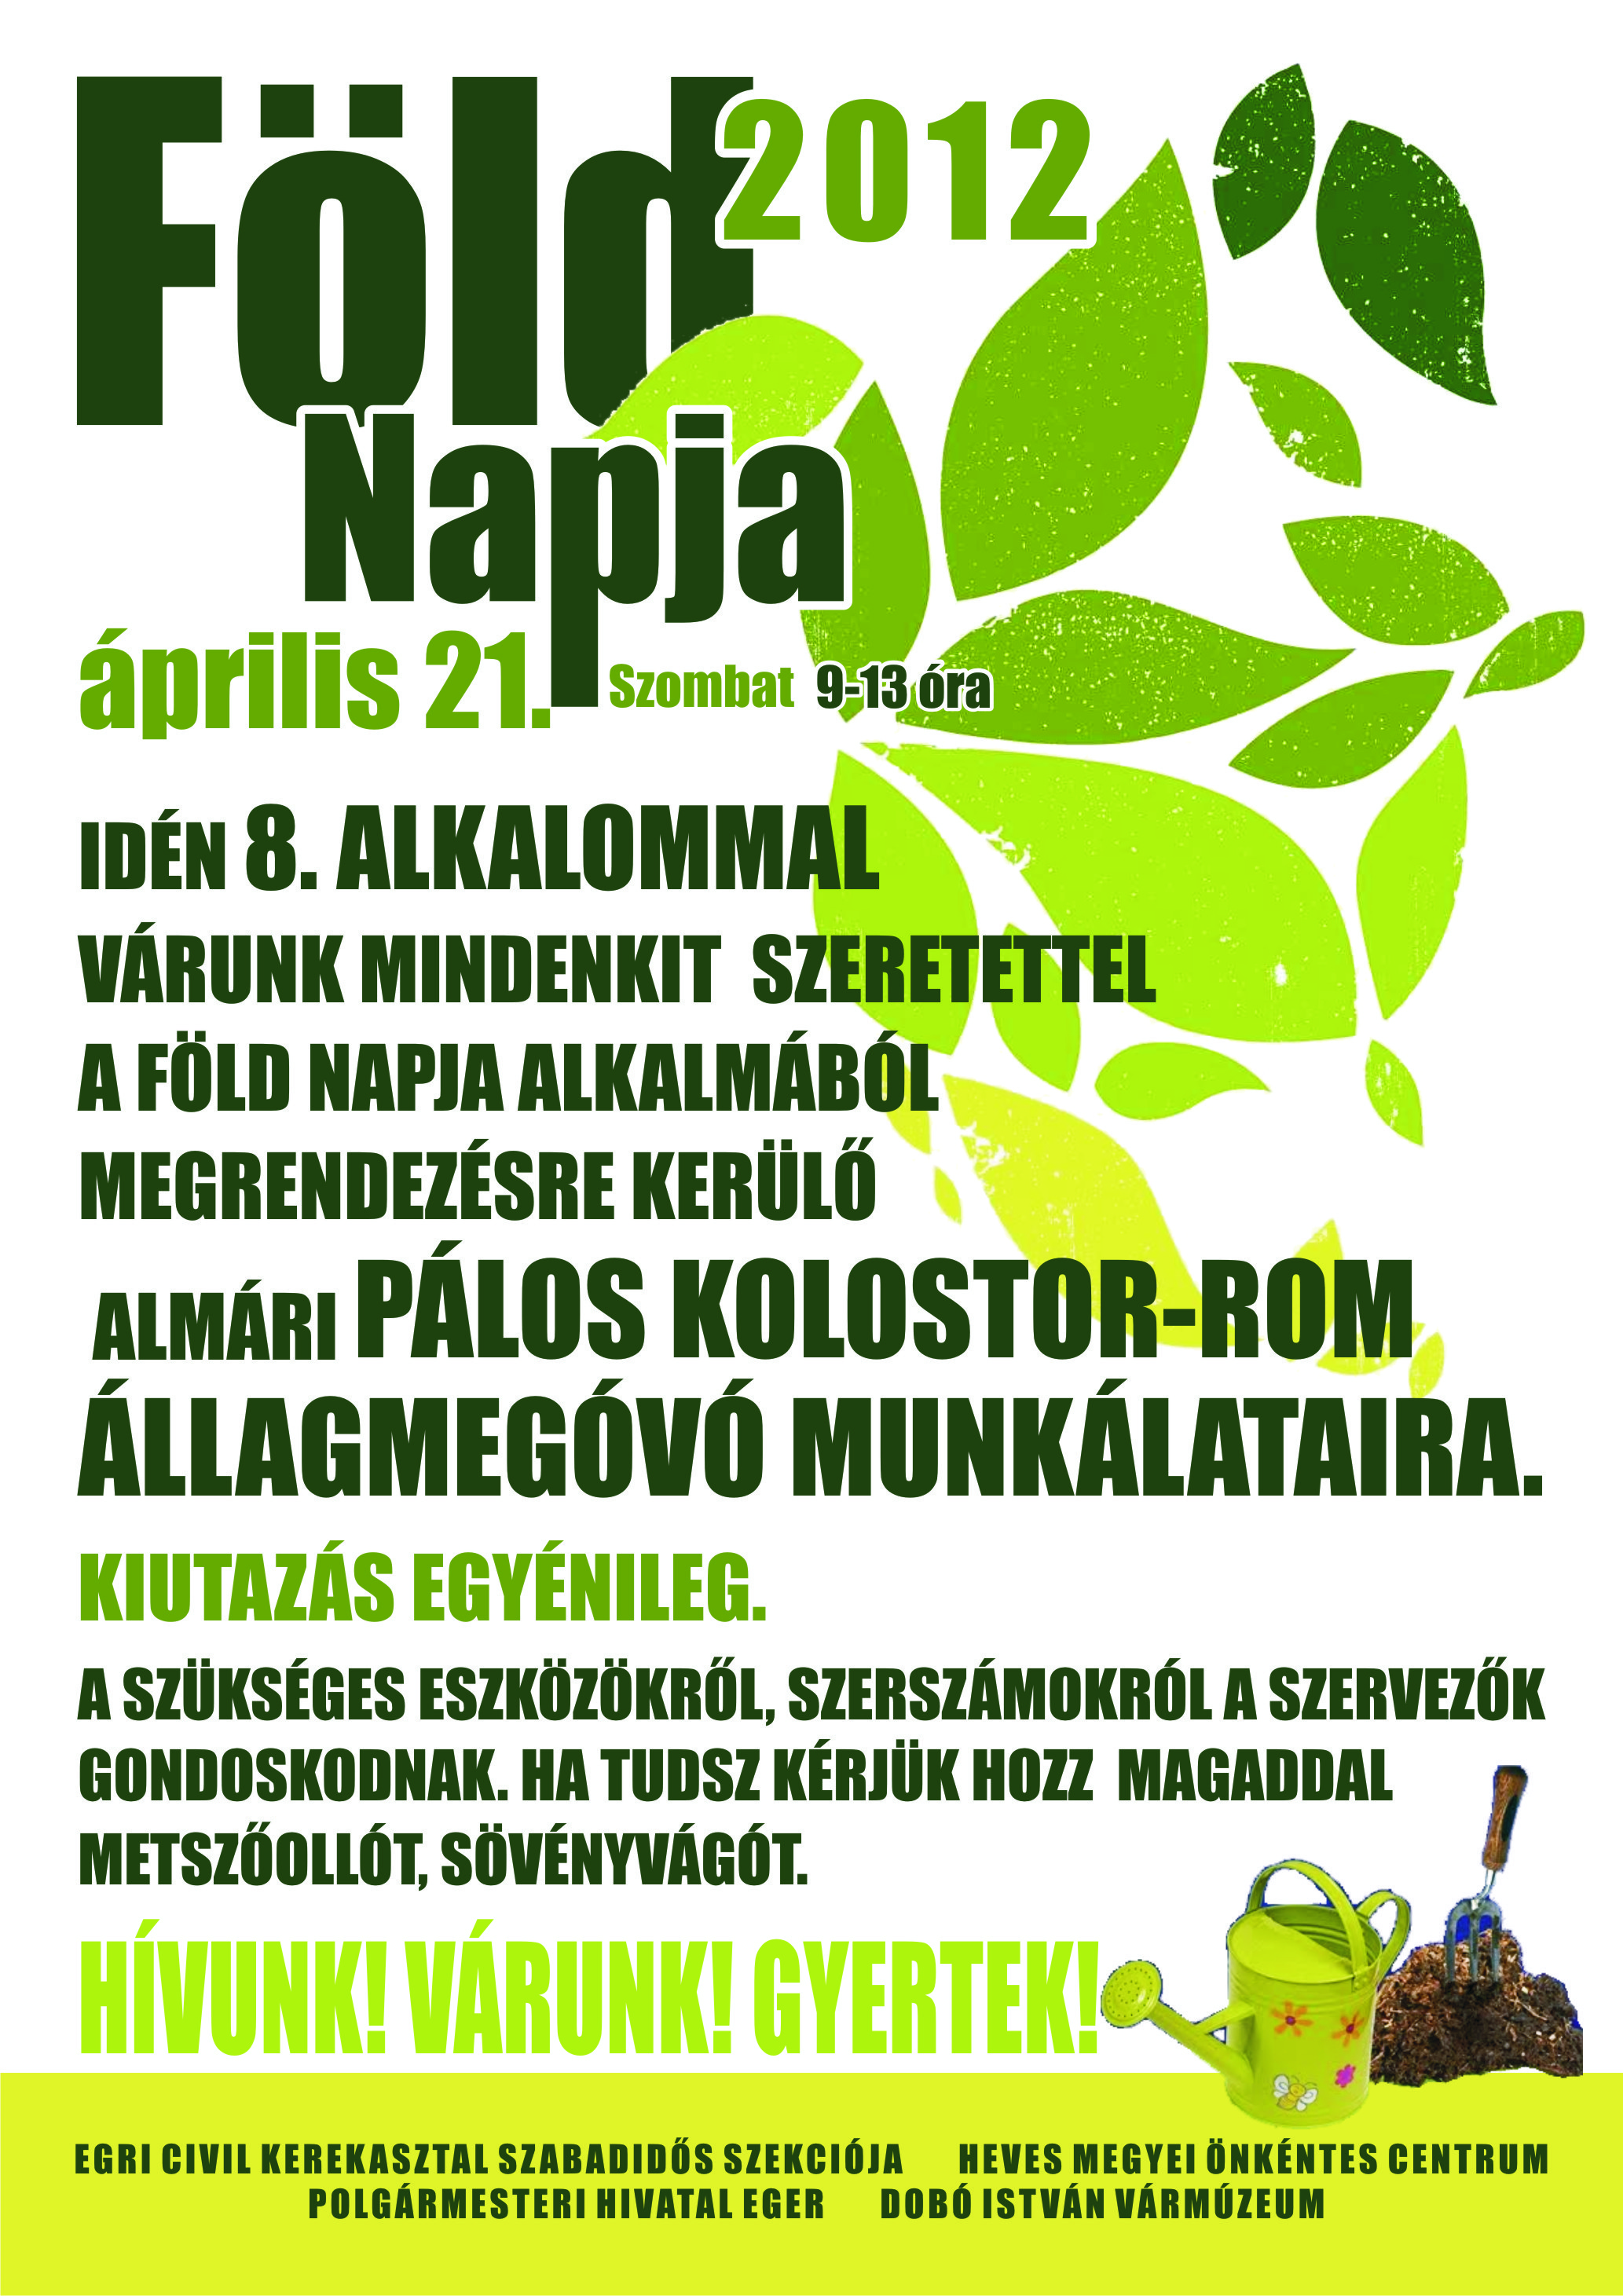 F&ouml;ld napja 2012